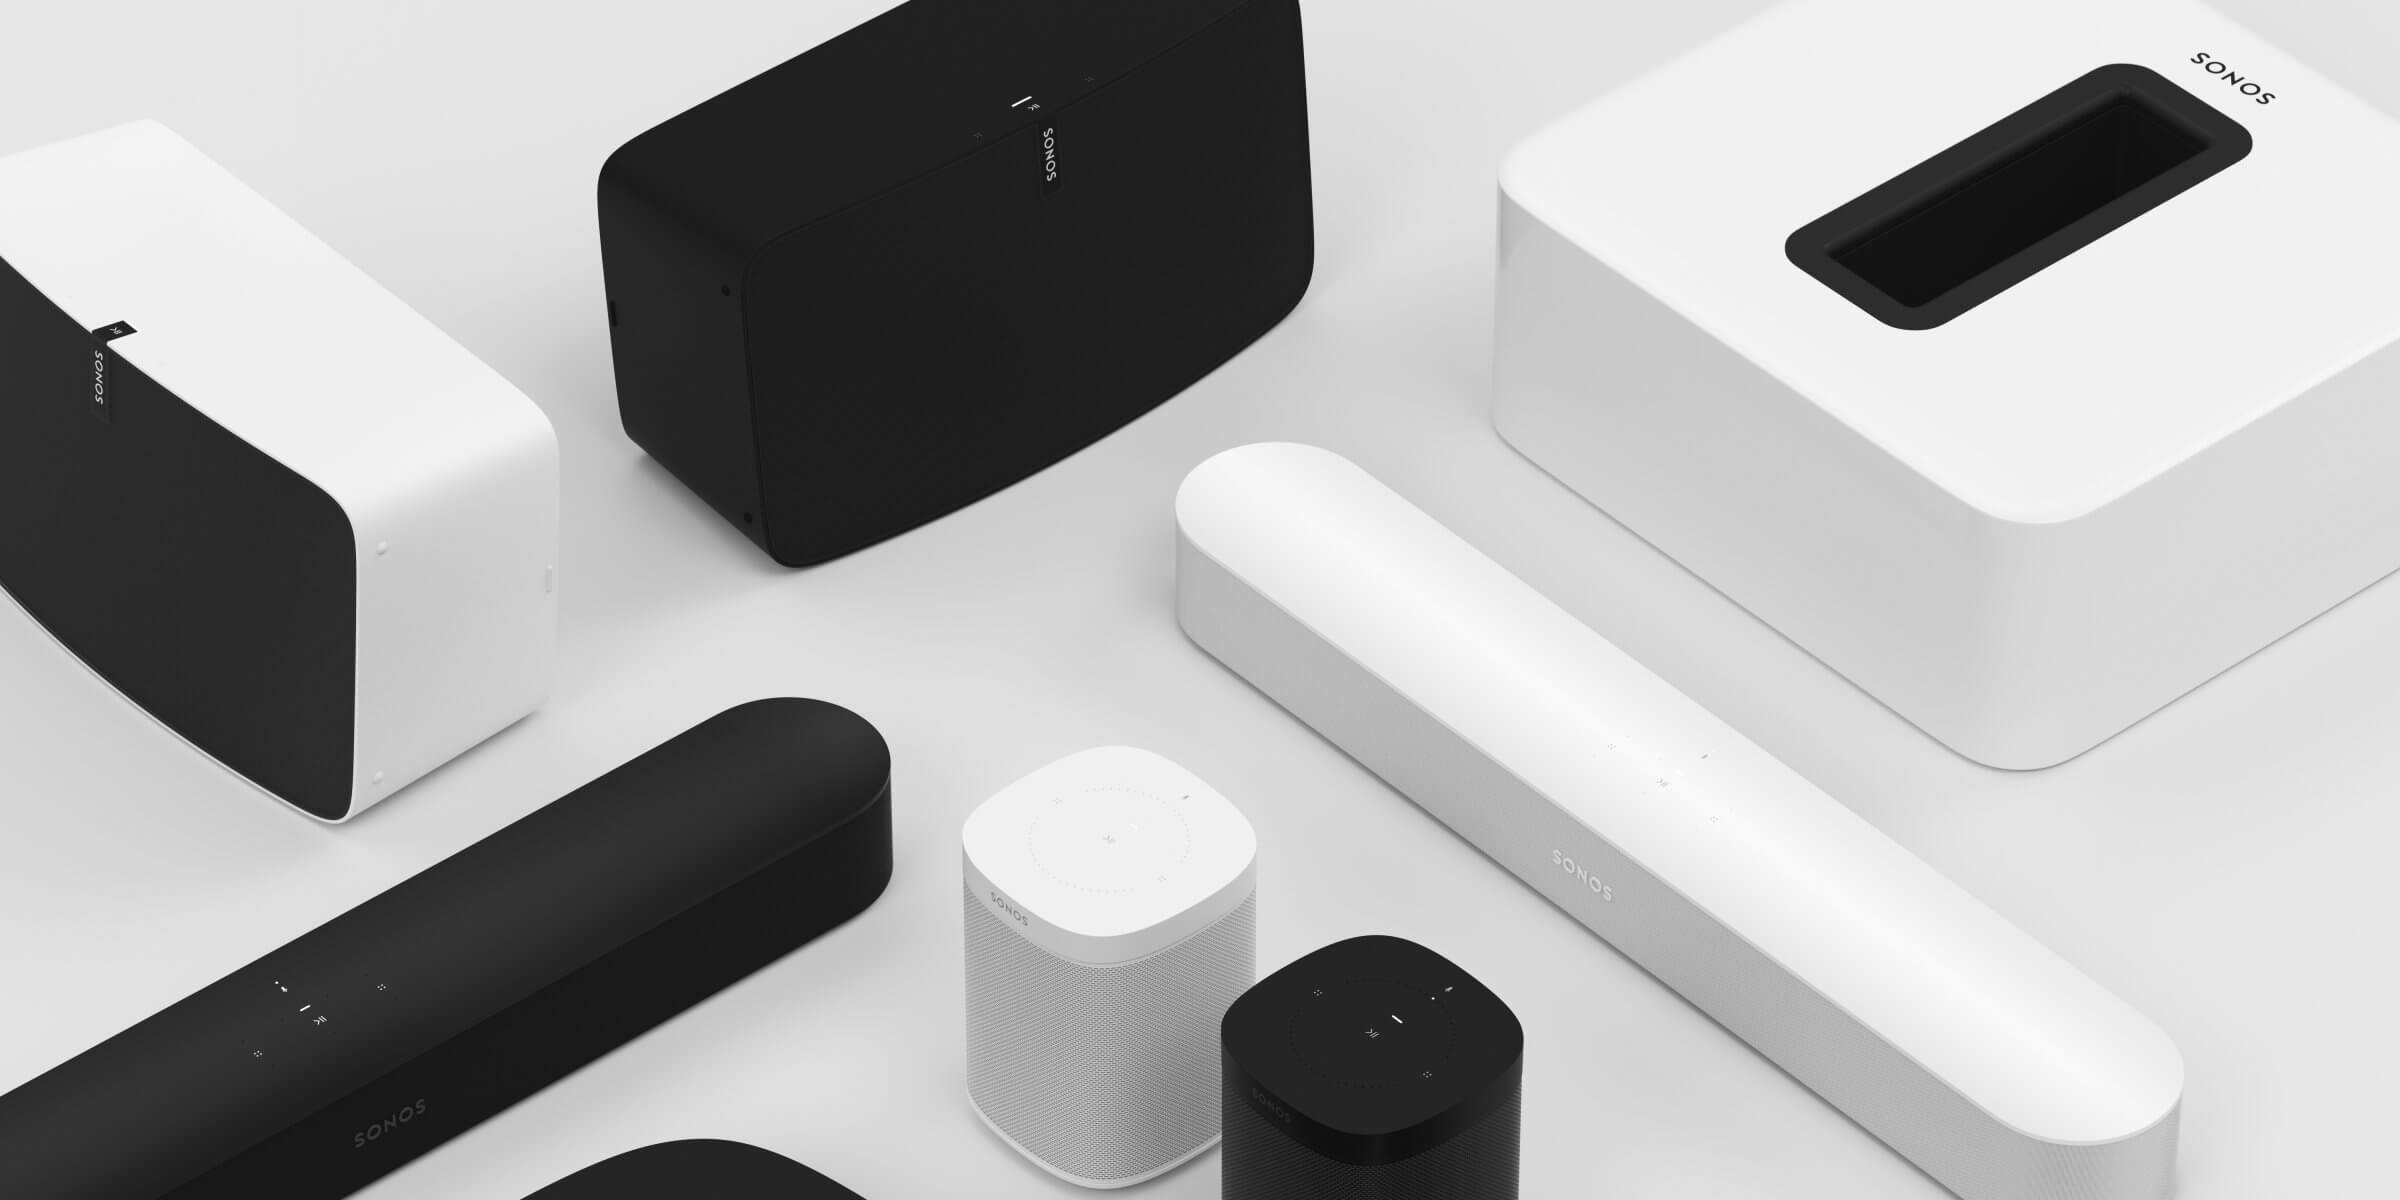 Sonos CEO says Amazon is selling its Echo devices below cost